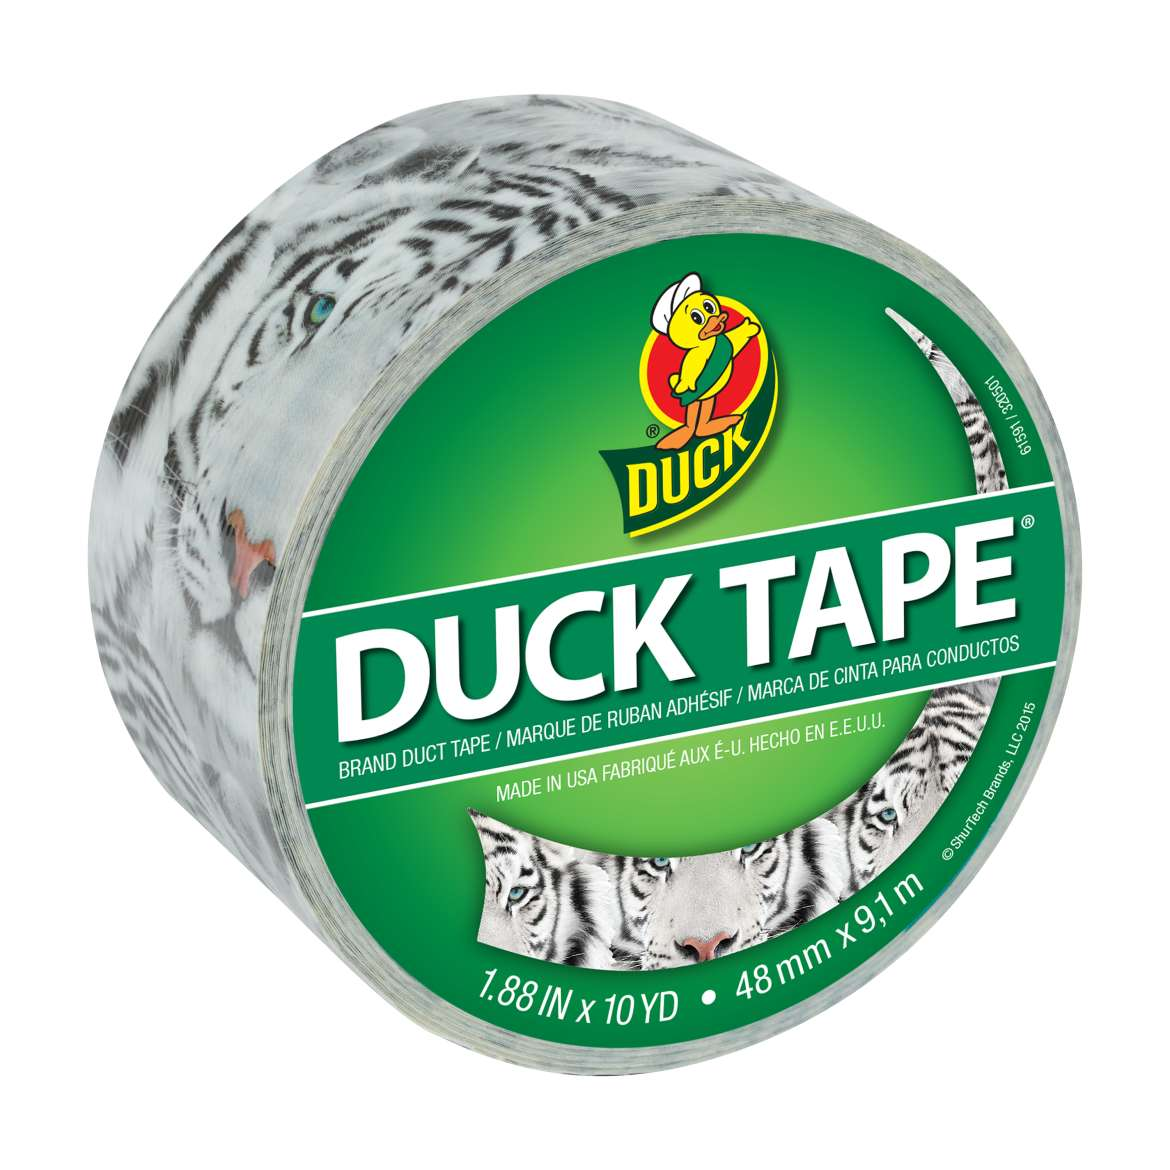 Printed Duck Tape Brand Duct Tape - Roar, 1.88 in. x 10 yd.